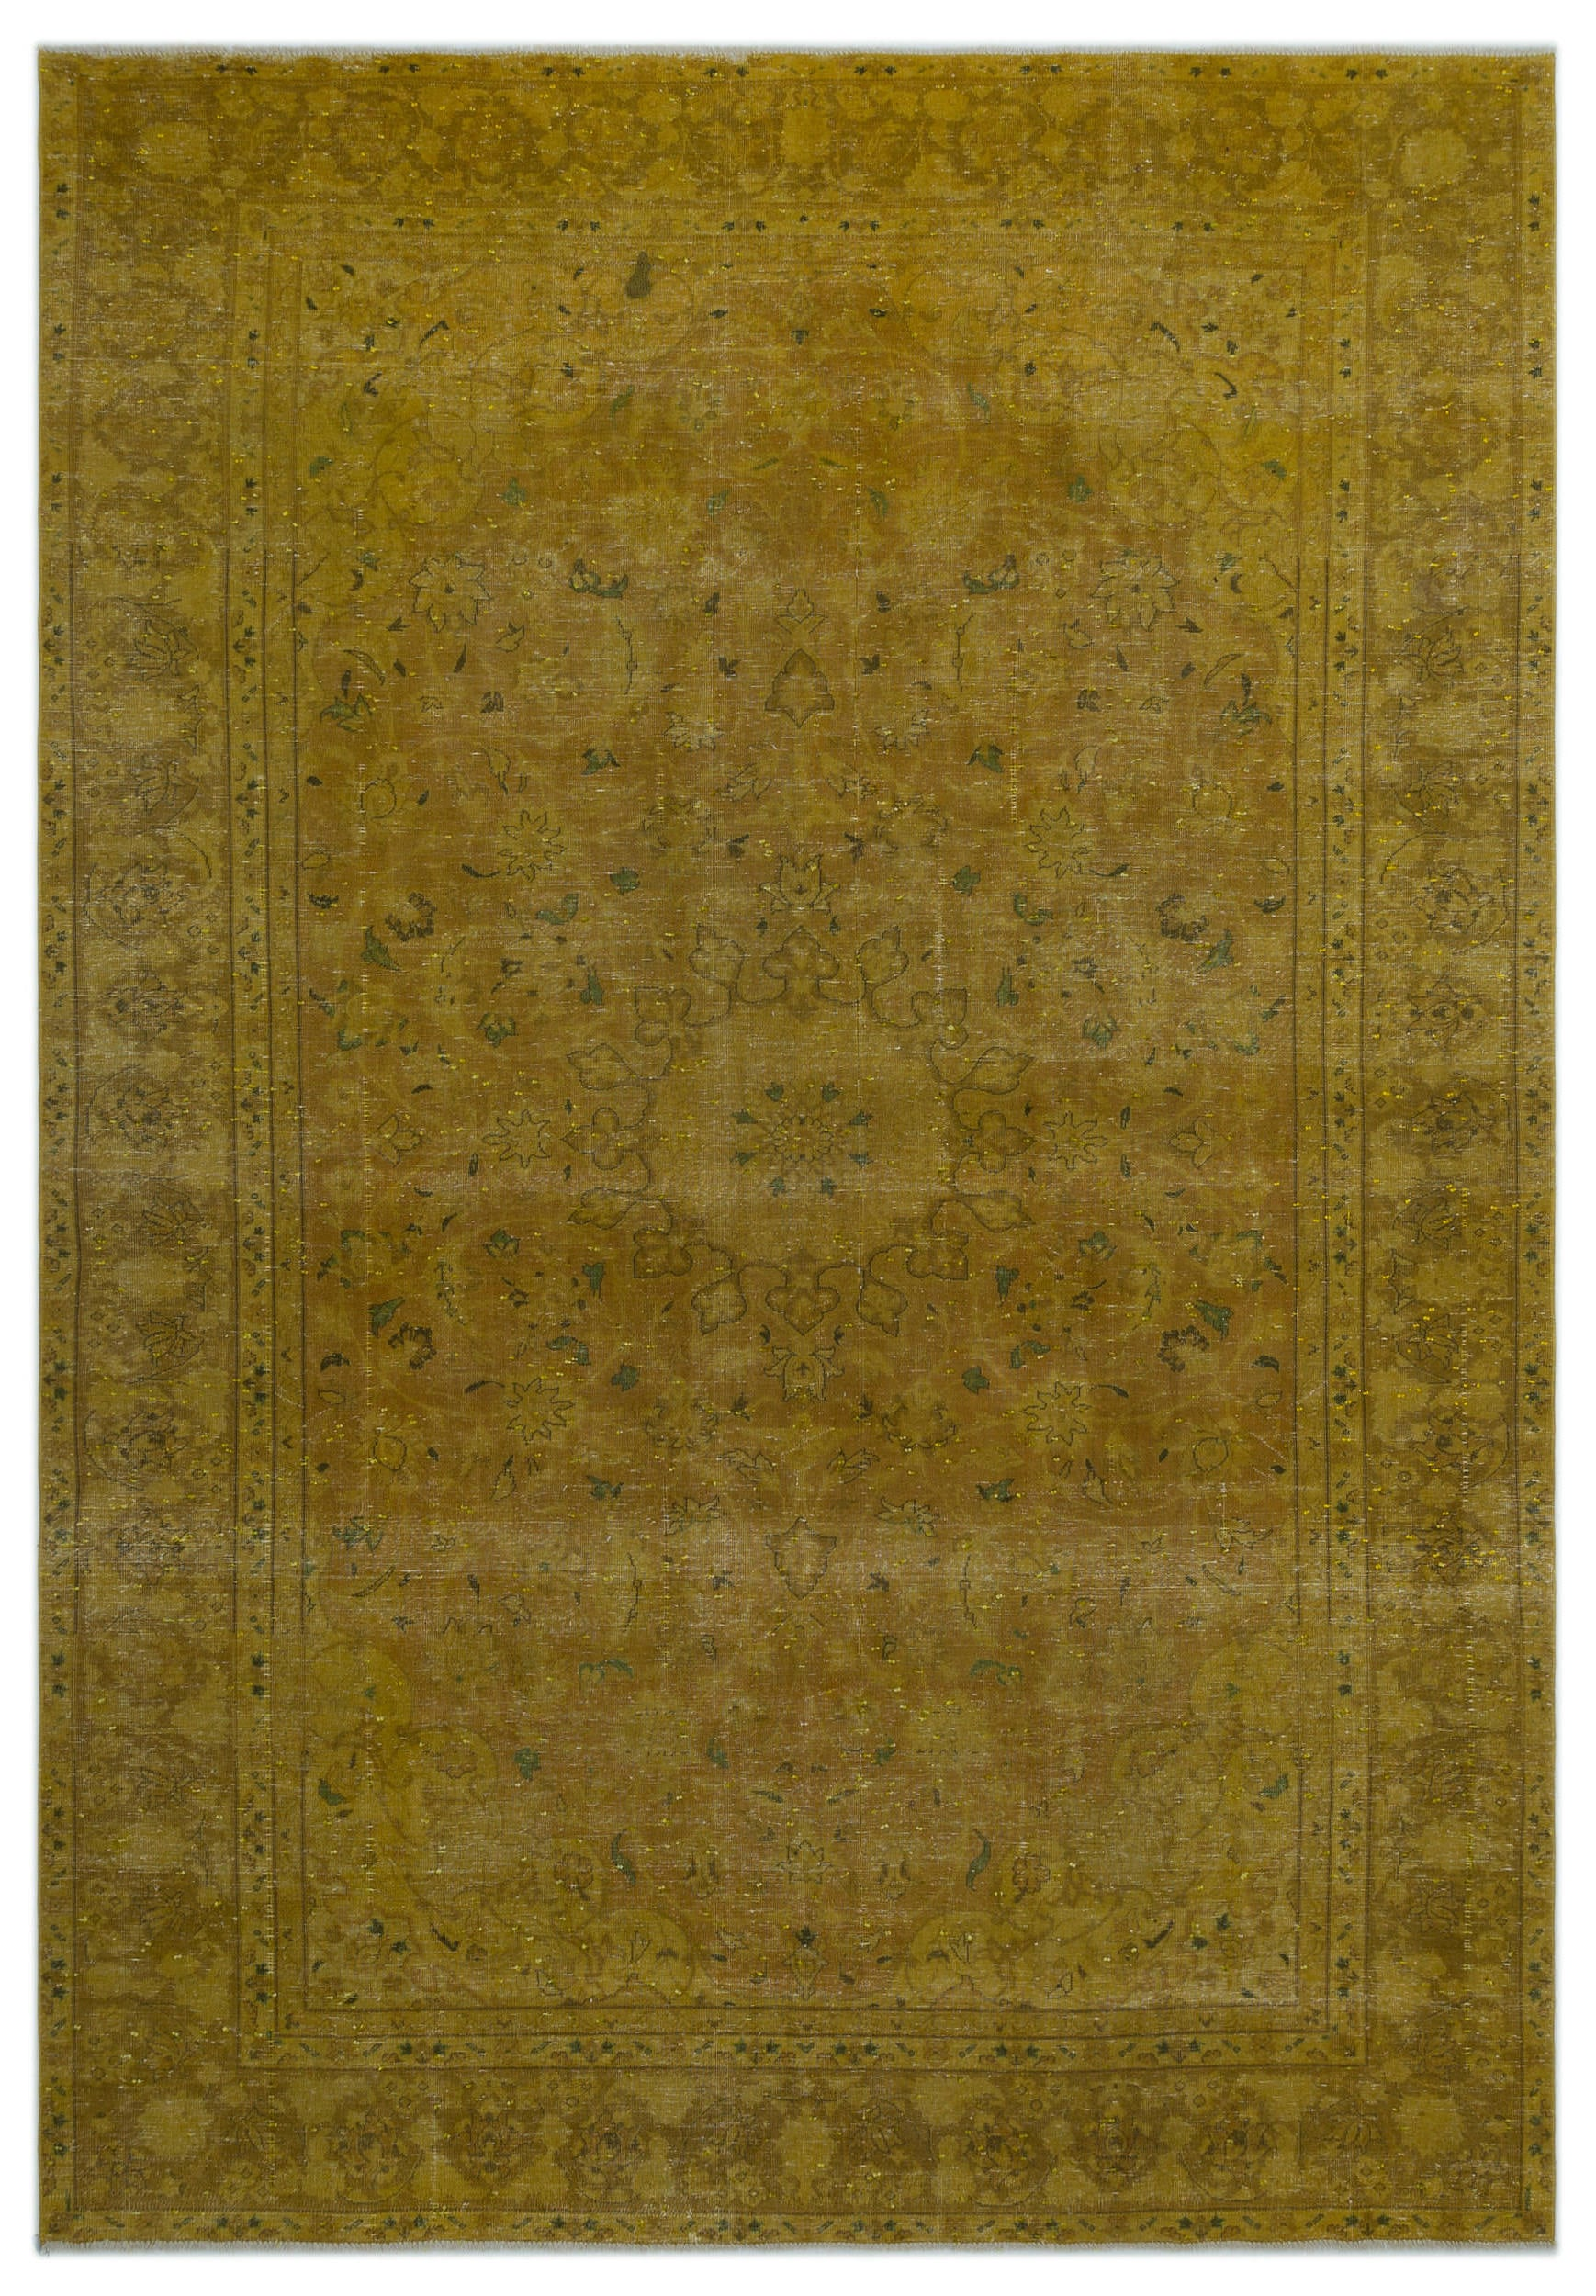 Yellow Over Dyed Vintage XLarge Rug 8'10'' x 12'8'' ft 268 x 385 cm